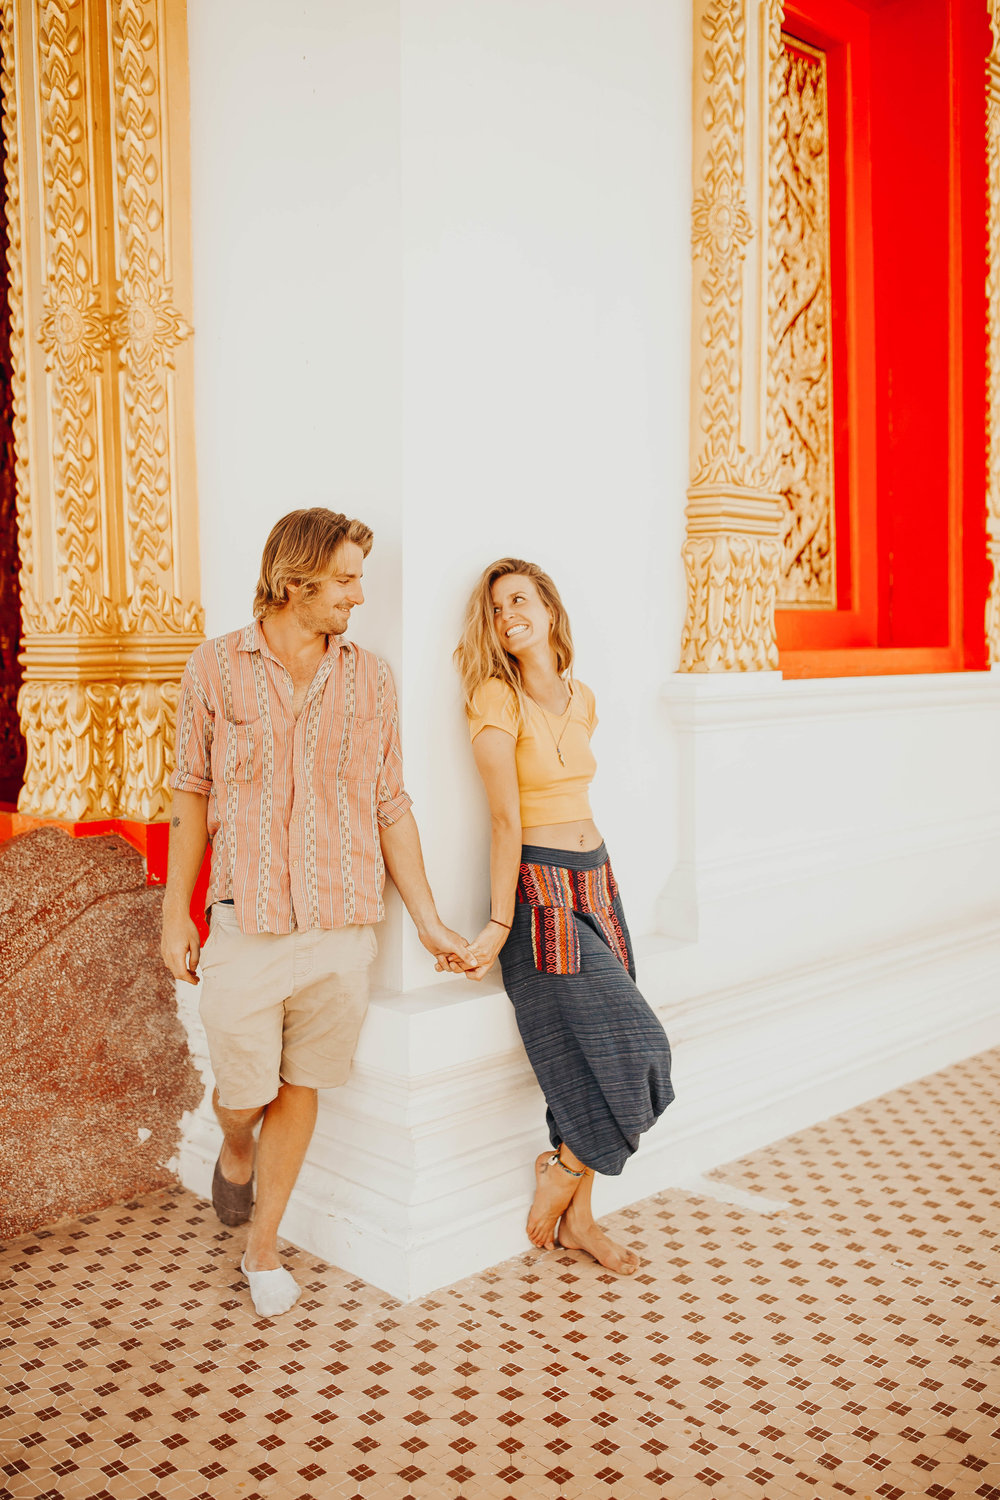 Julie and Will Old Town Phuket Couples Session 4.jpg